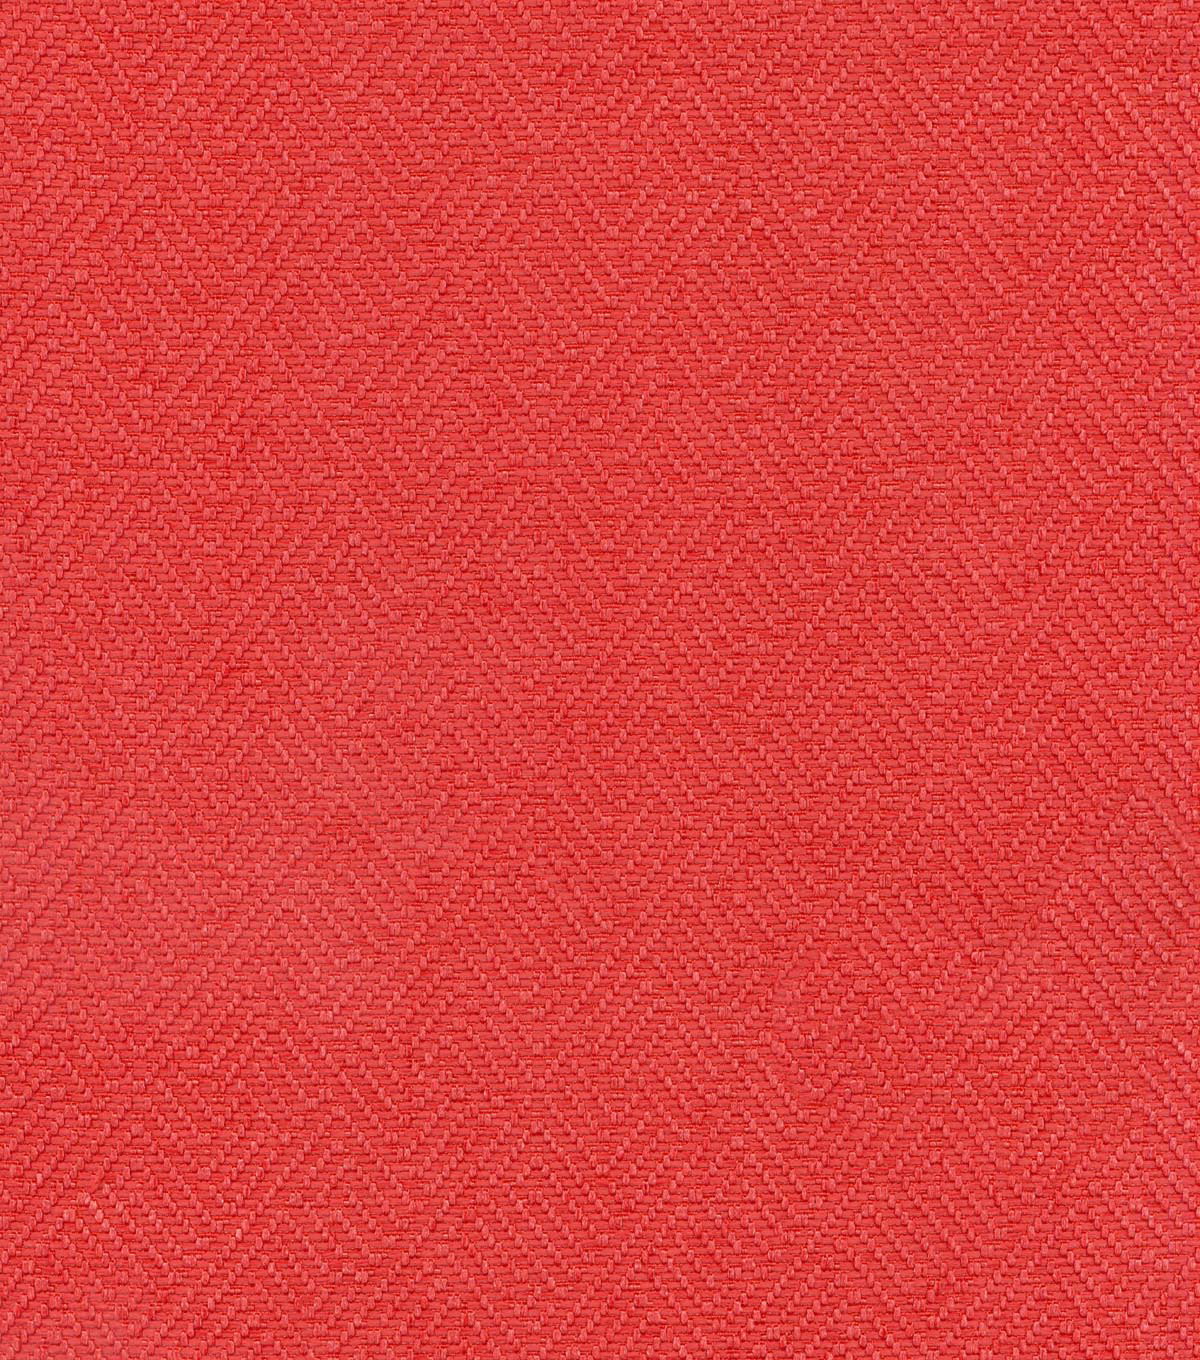 Home Decor 8\u0022x8\u0022 Swatch Fabric-PK Lifestyles Basketry Nectar